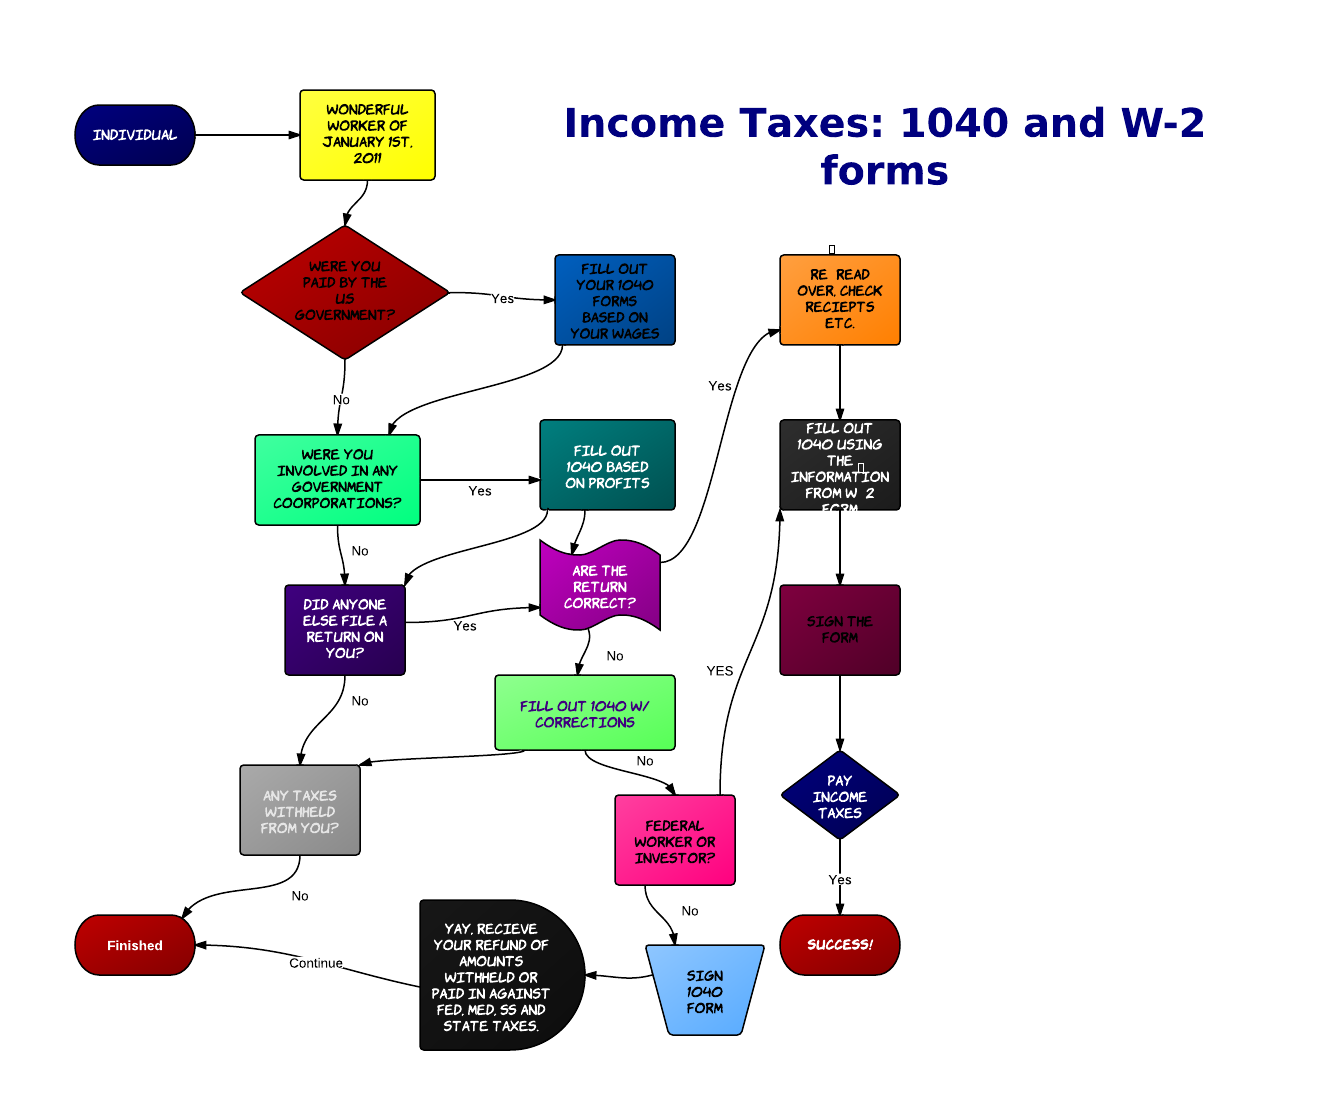 Income tax flow chart tyler lamaya science leadership incometaxes incometaxes here it is flow chart nvjuhfo Images